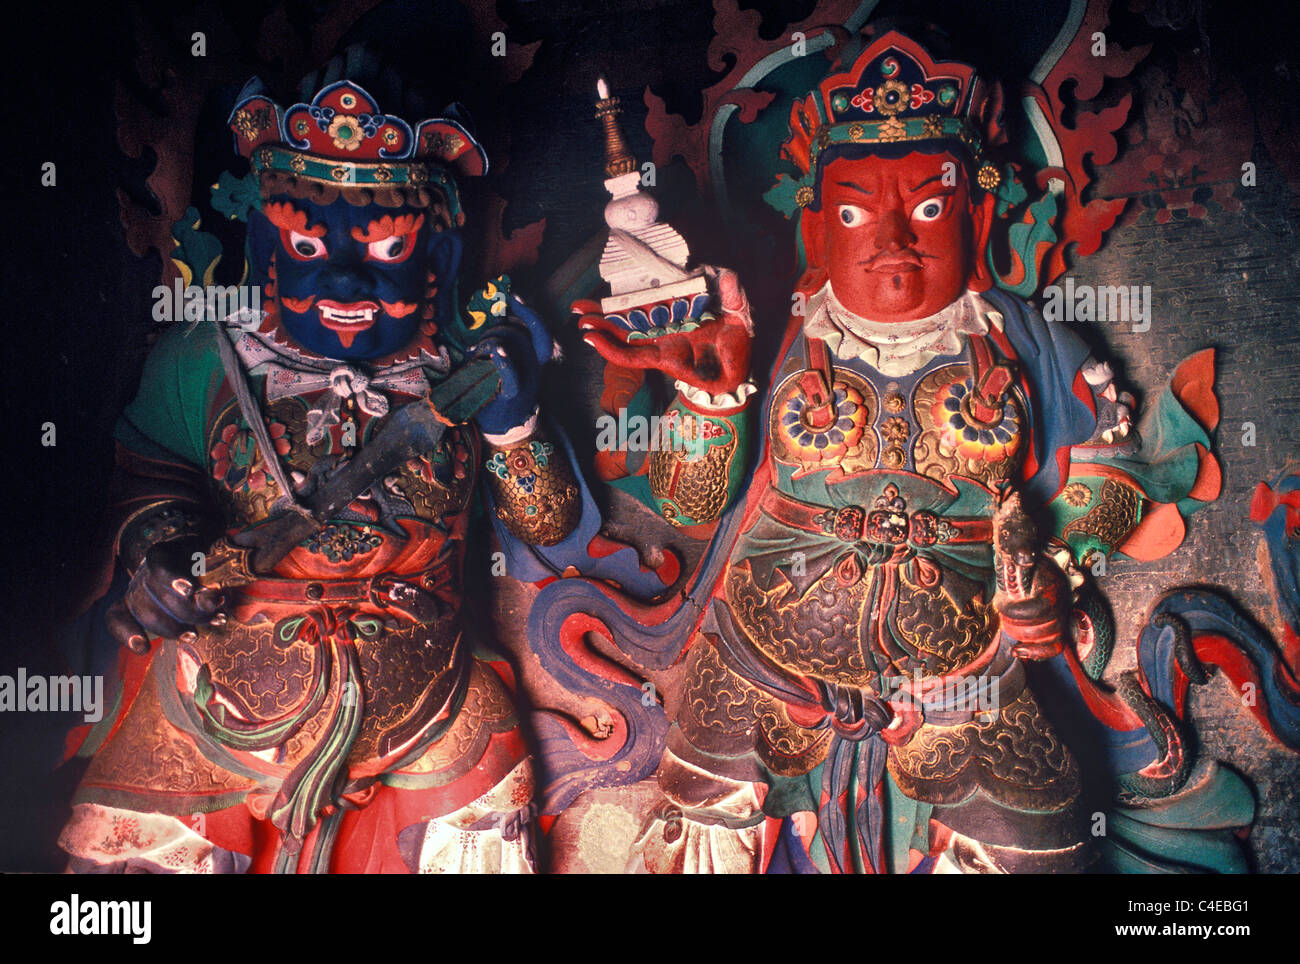 Statues in Chapel, Gyangtse Kumbum. The Kumbum  is a three dimensional mandala, meant to portray the Buddhist cosmos. - Stock Image